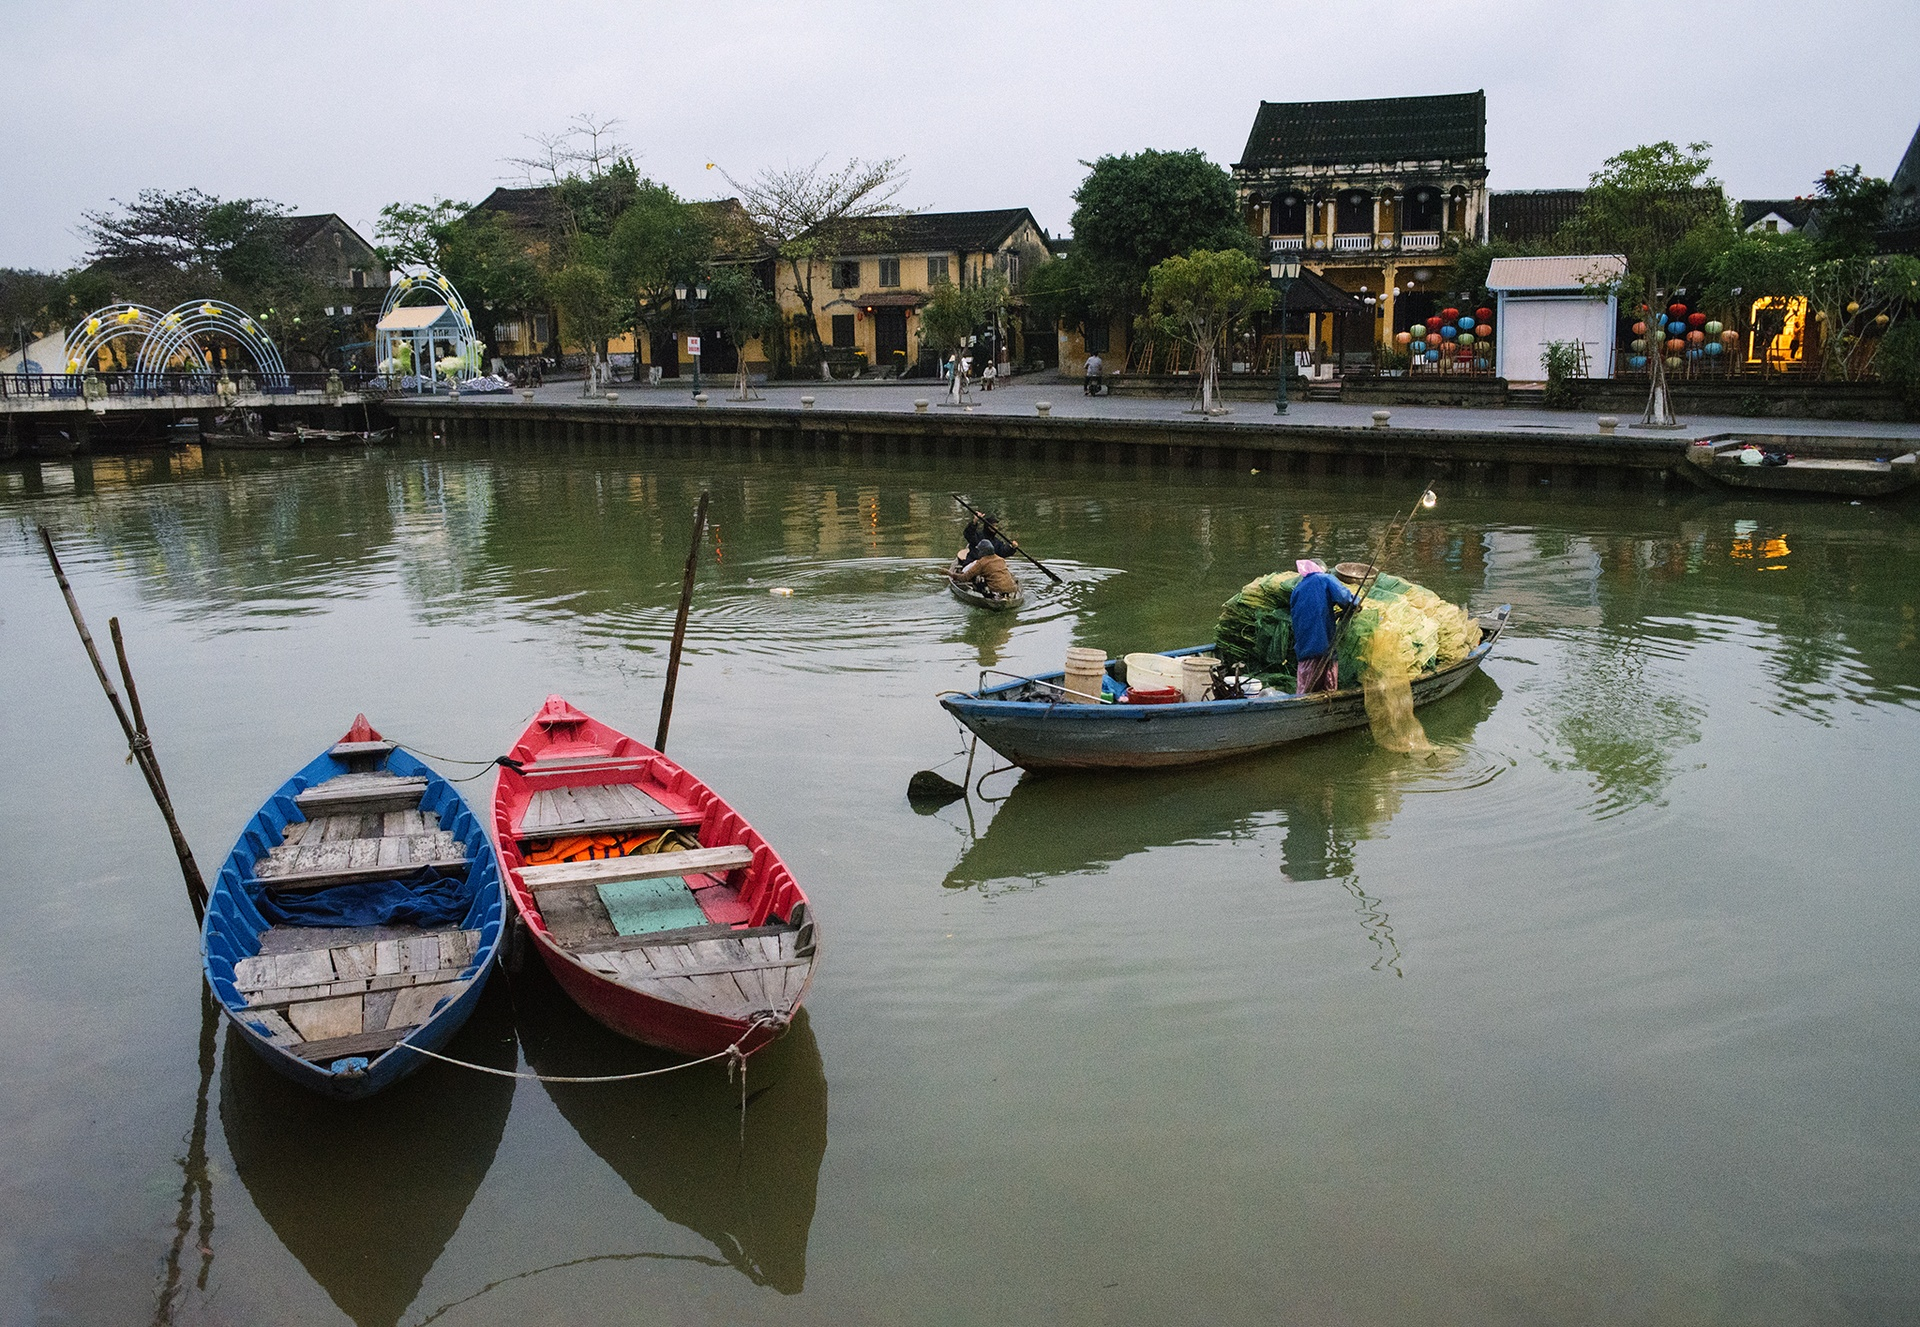 canh dep du lich Hoi An anh 7